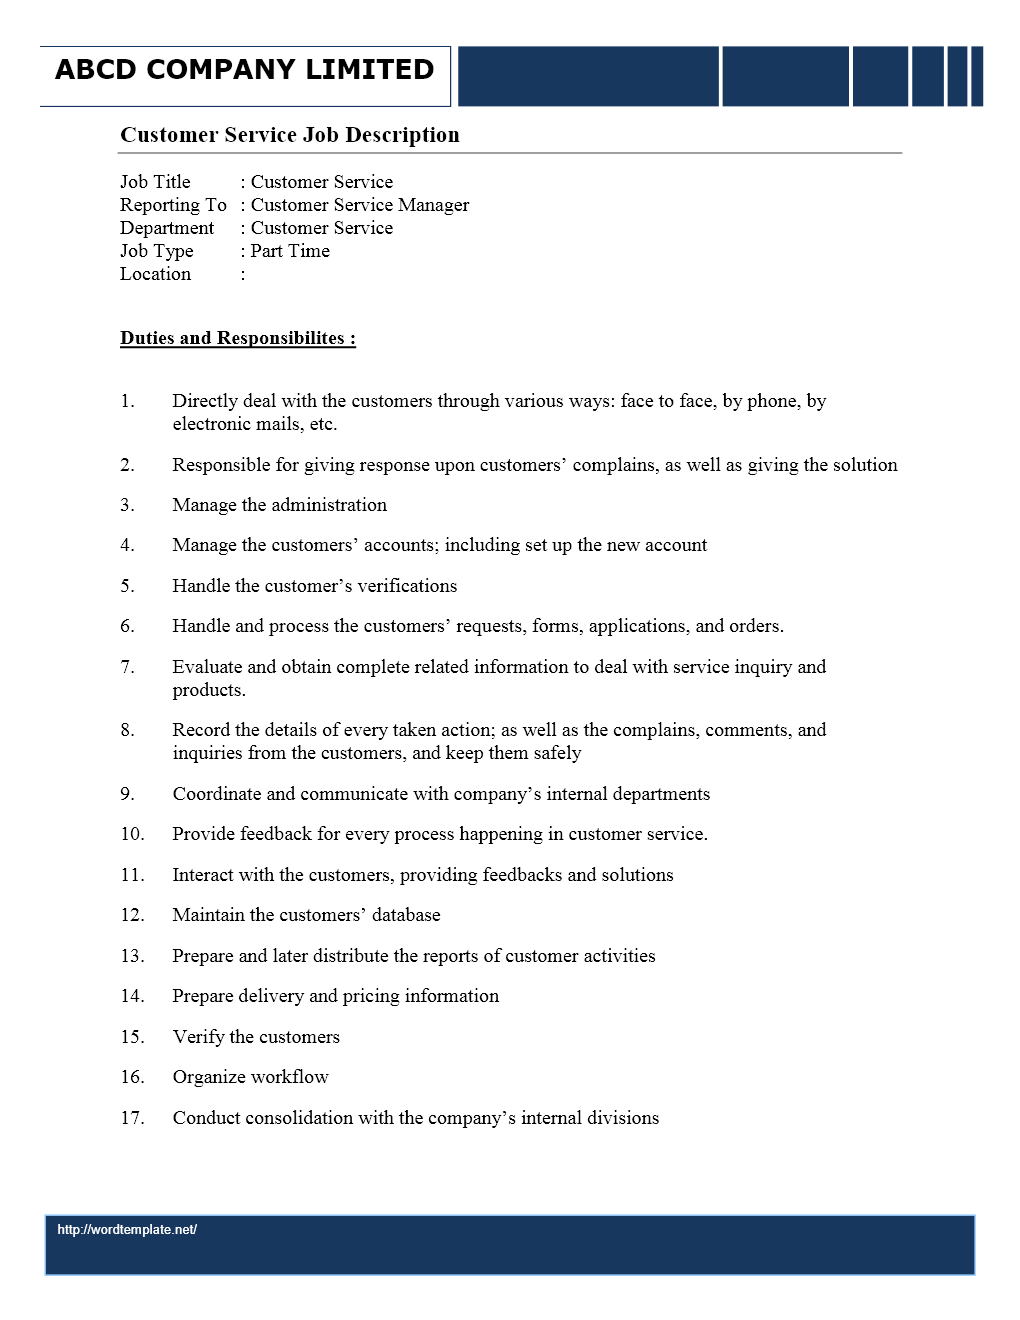 Bank Teller Job Description | Freewordtemplates.net